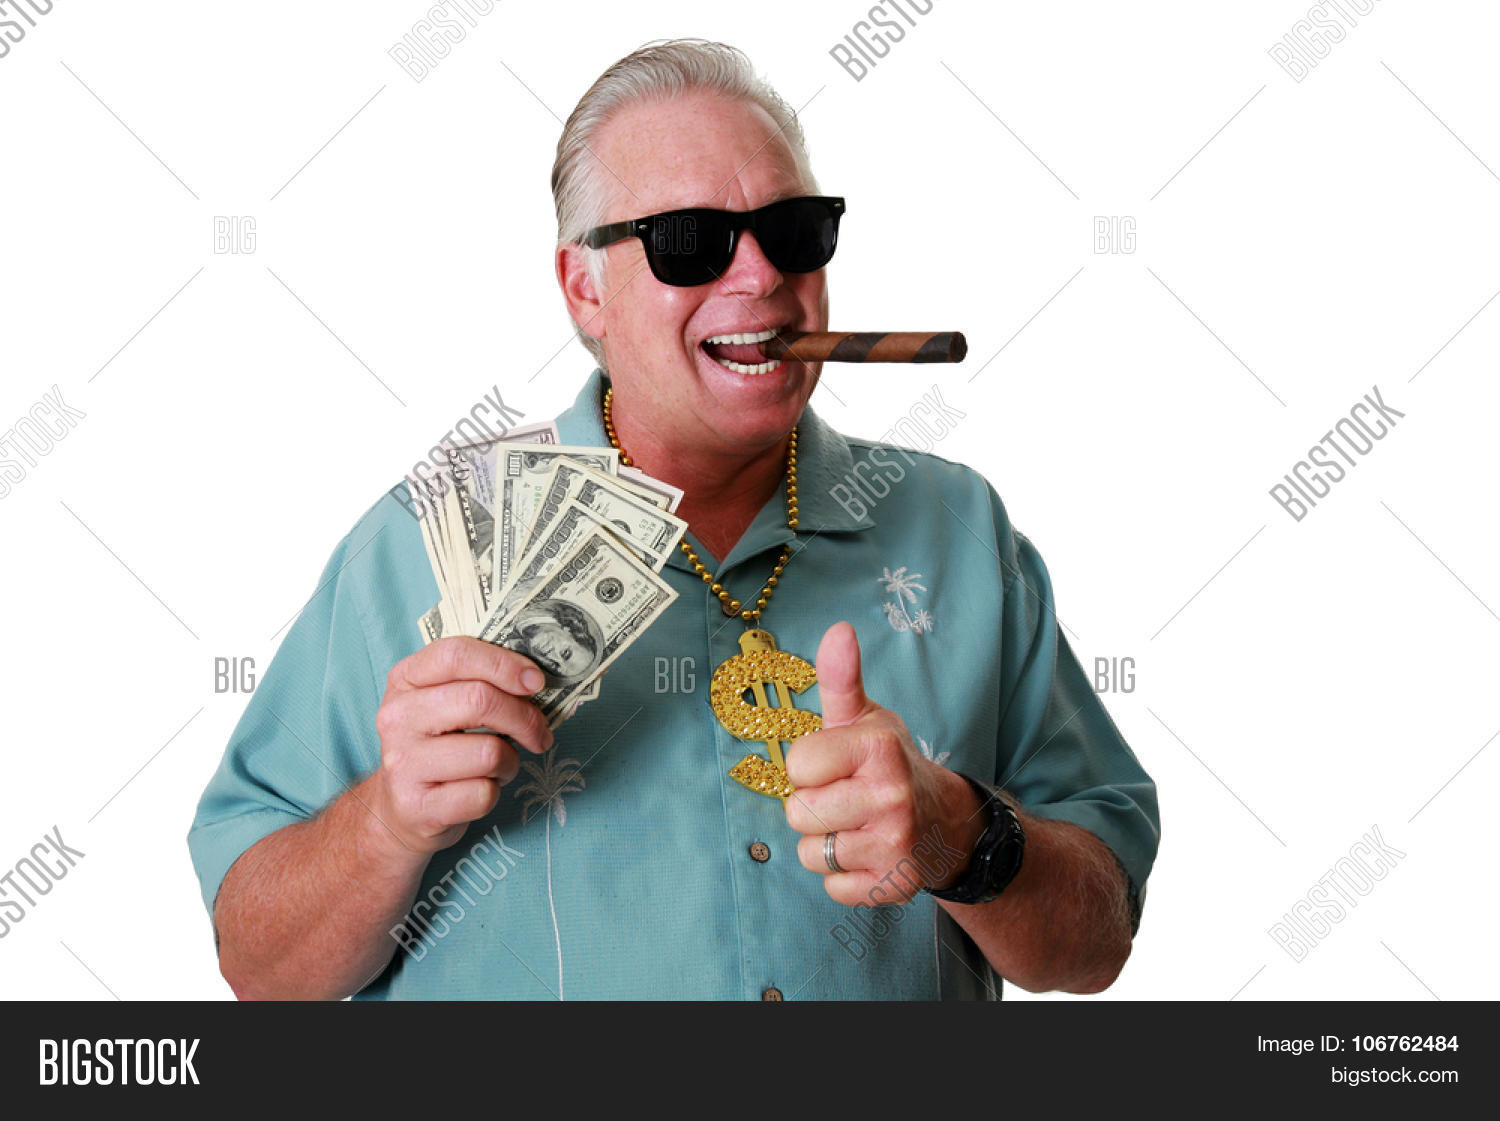 dollar stock photos man money man wins image photo free trial bigstock 5891